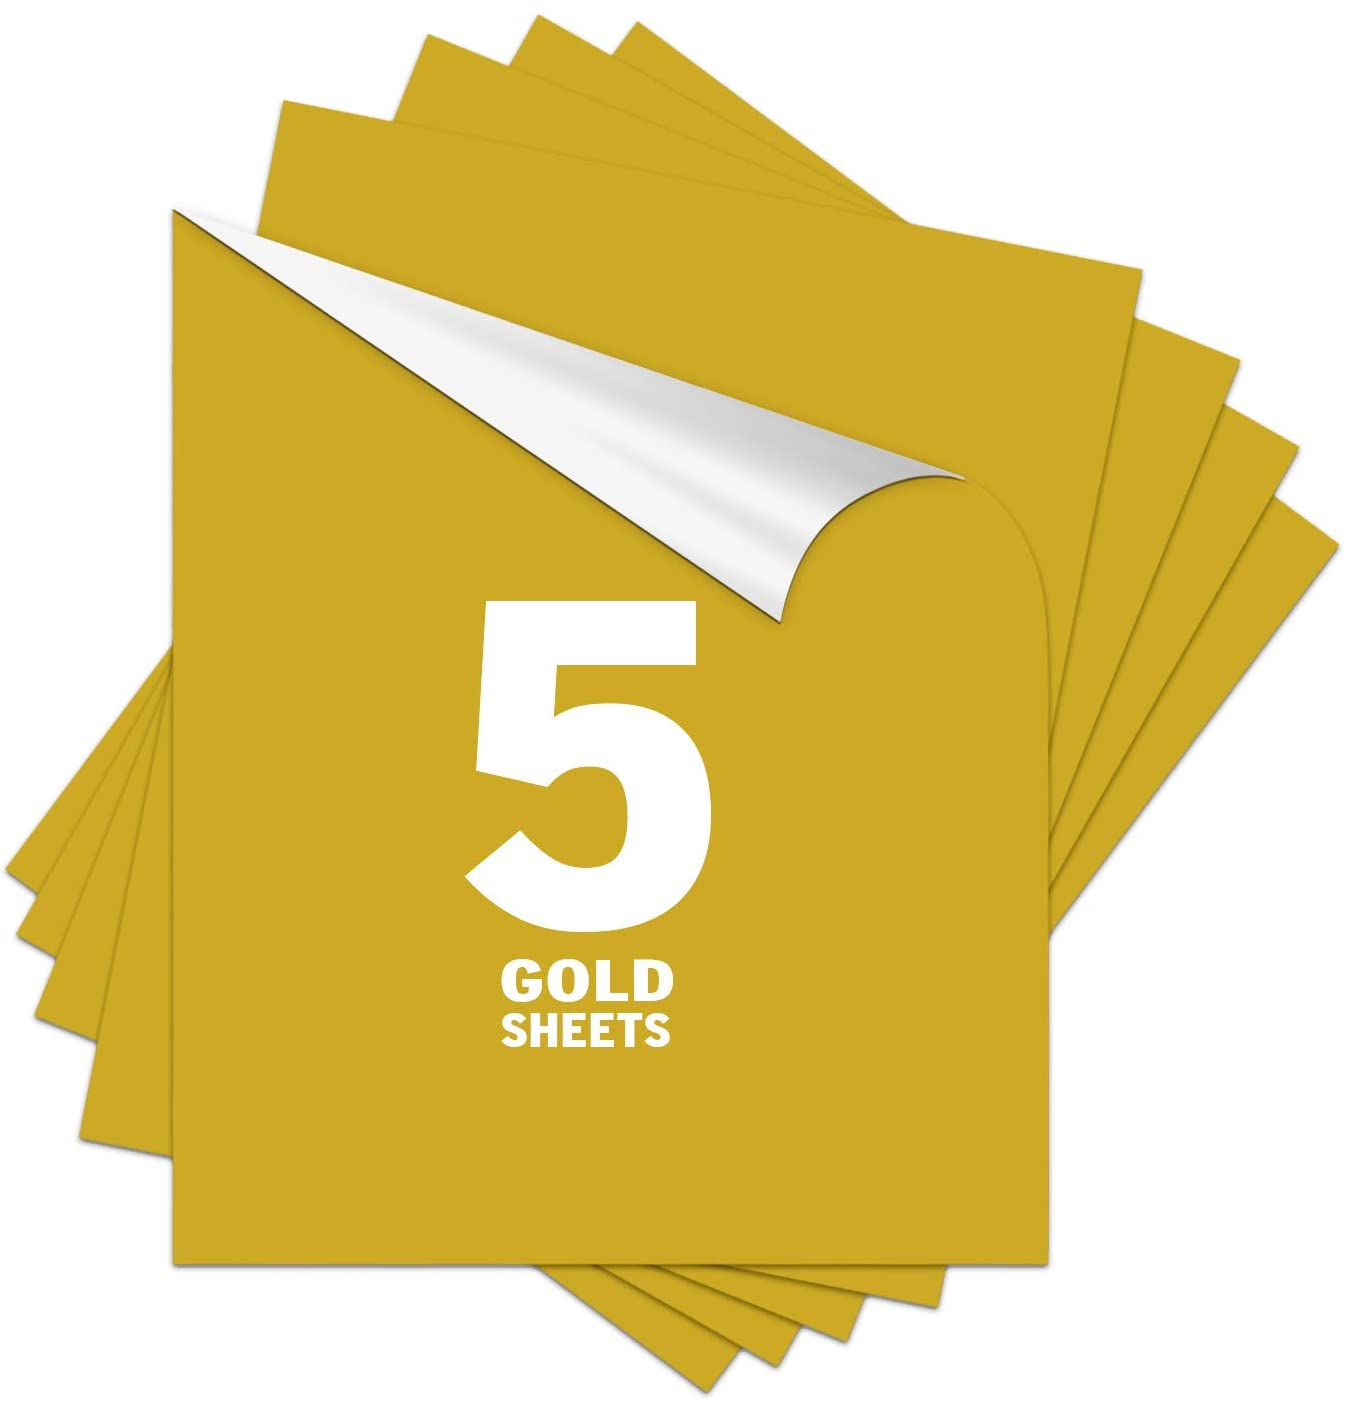 Gold HTV Heat Transfer Vinyl 12x10inch 5 Sheets Pack-Iron On Vinyl HTV on t-Shirt Bundle Assorted Pack Iron on HTV Vinyl for Silhouette Cameo, Cricut or Heat Press